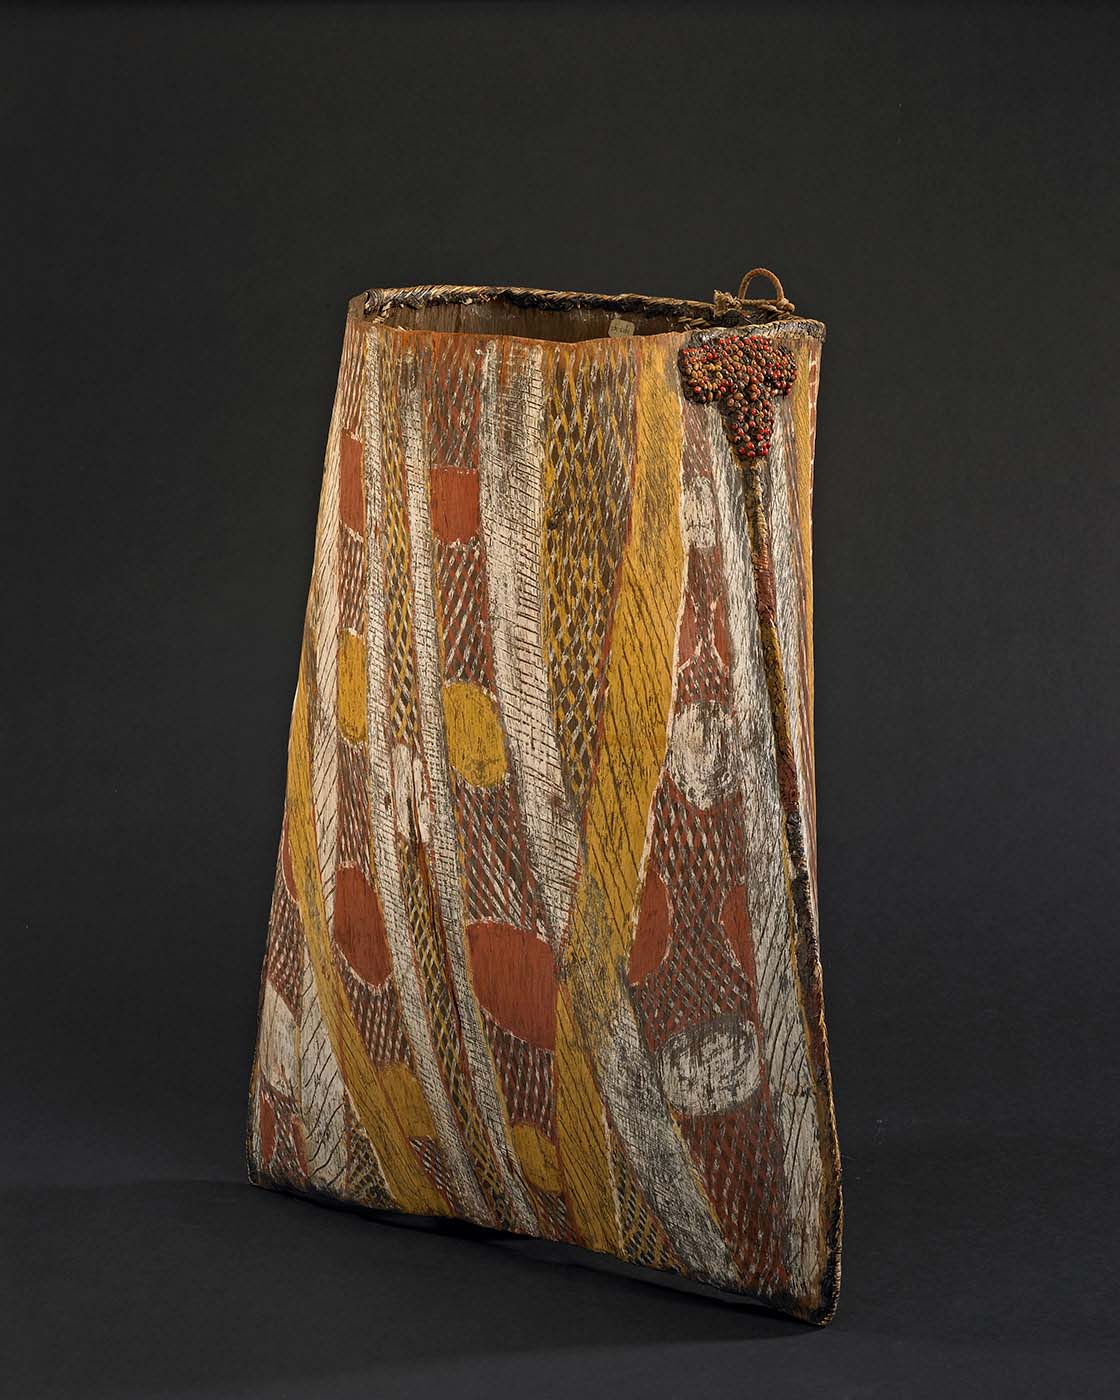 Basket made of folded bark with a geometric design painted with pigment.